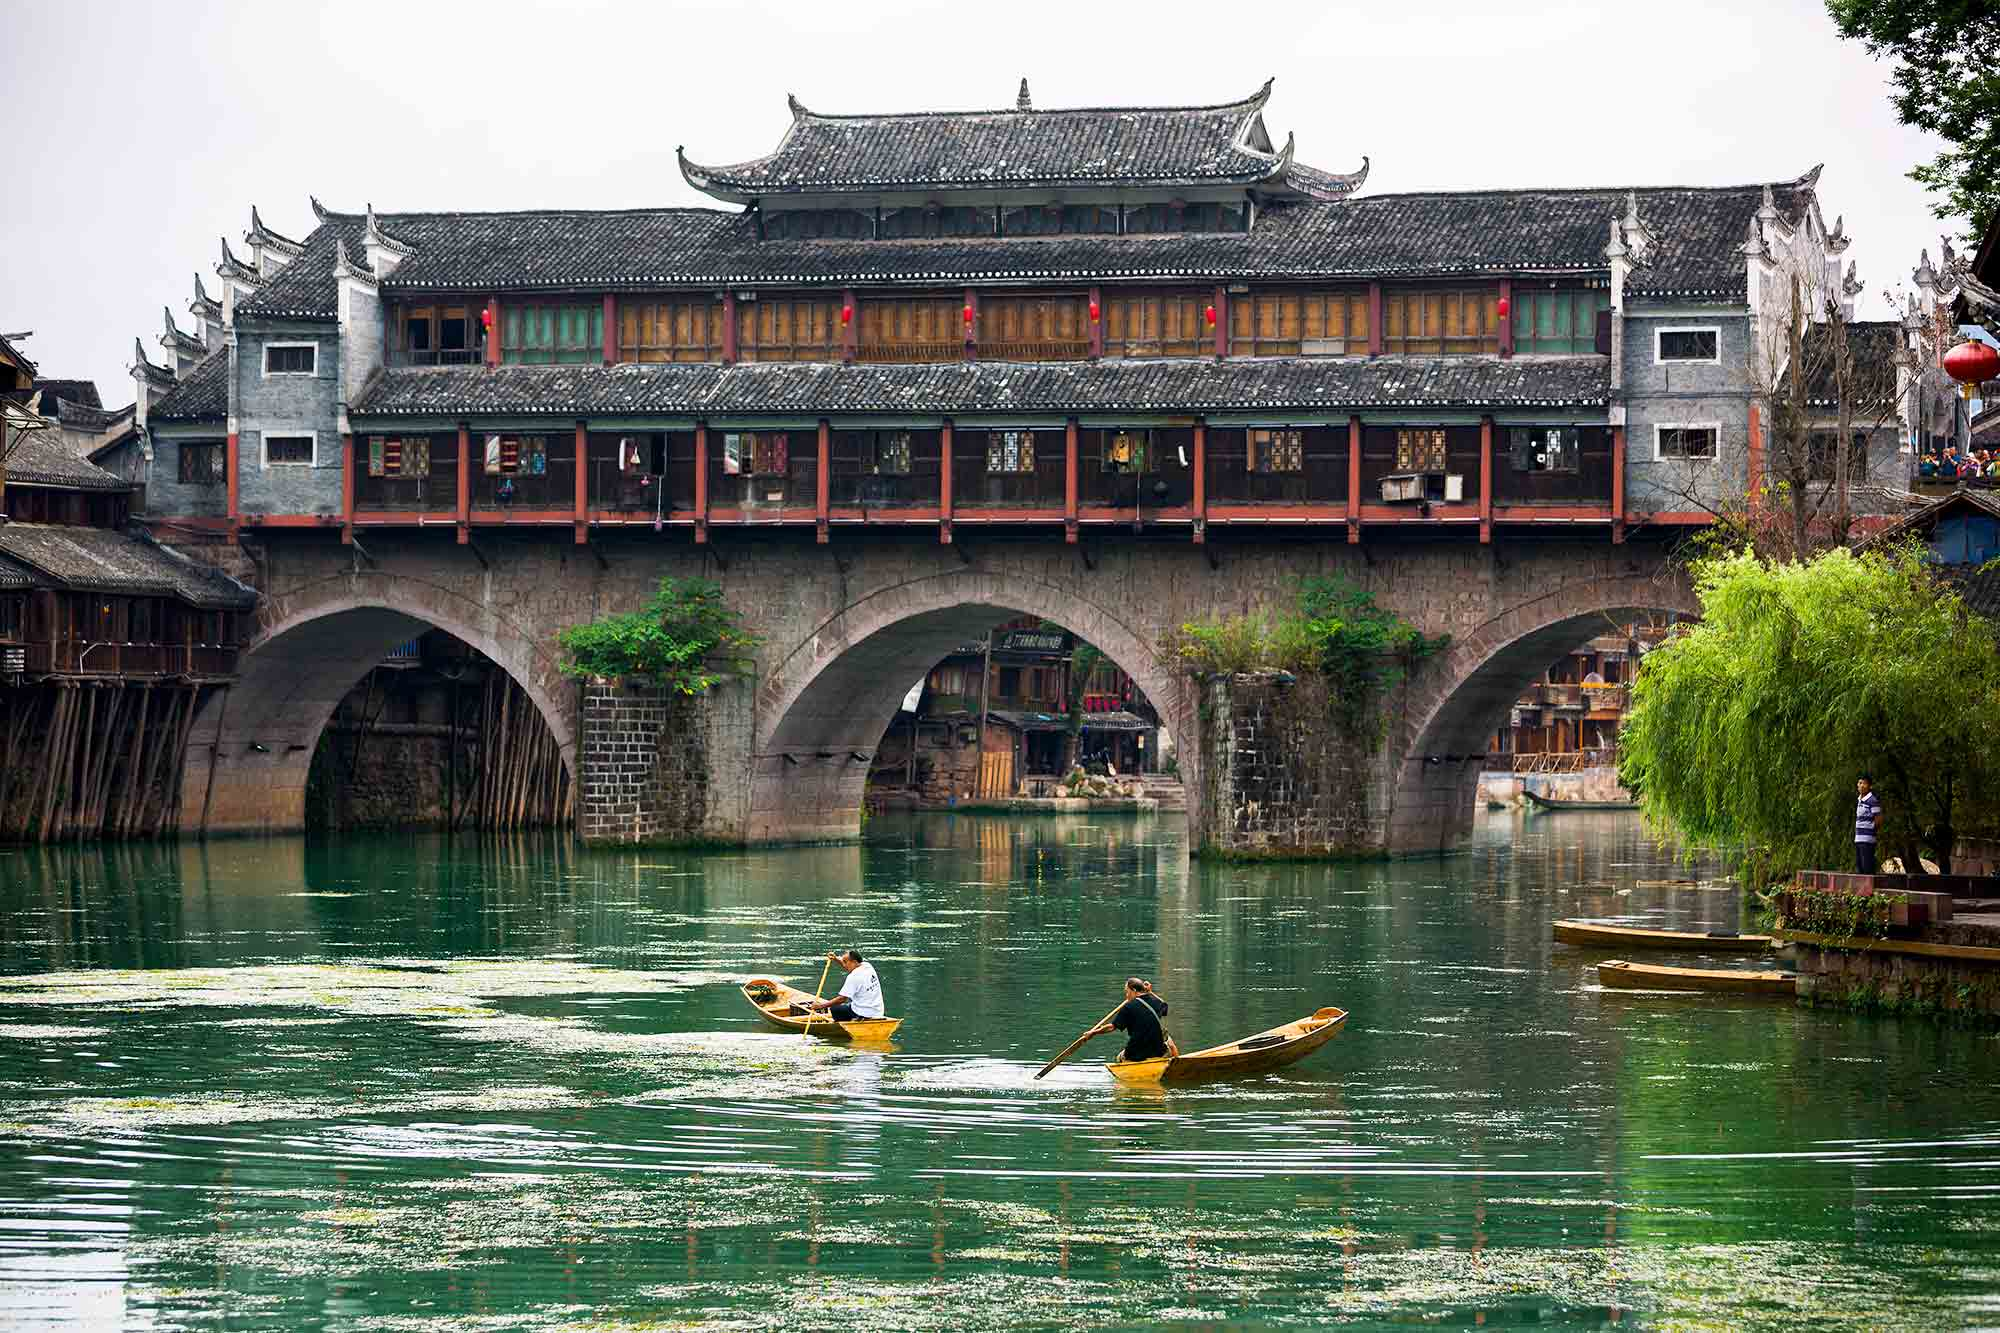 Beautiful Fenghuang town in China. © ULLI MAIER & NISA MAIER